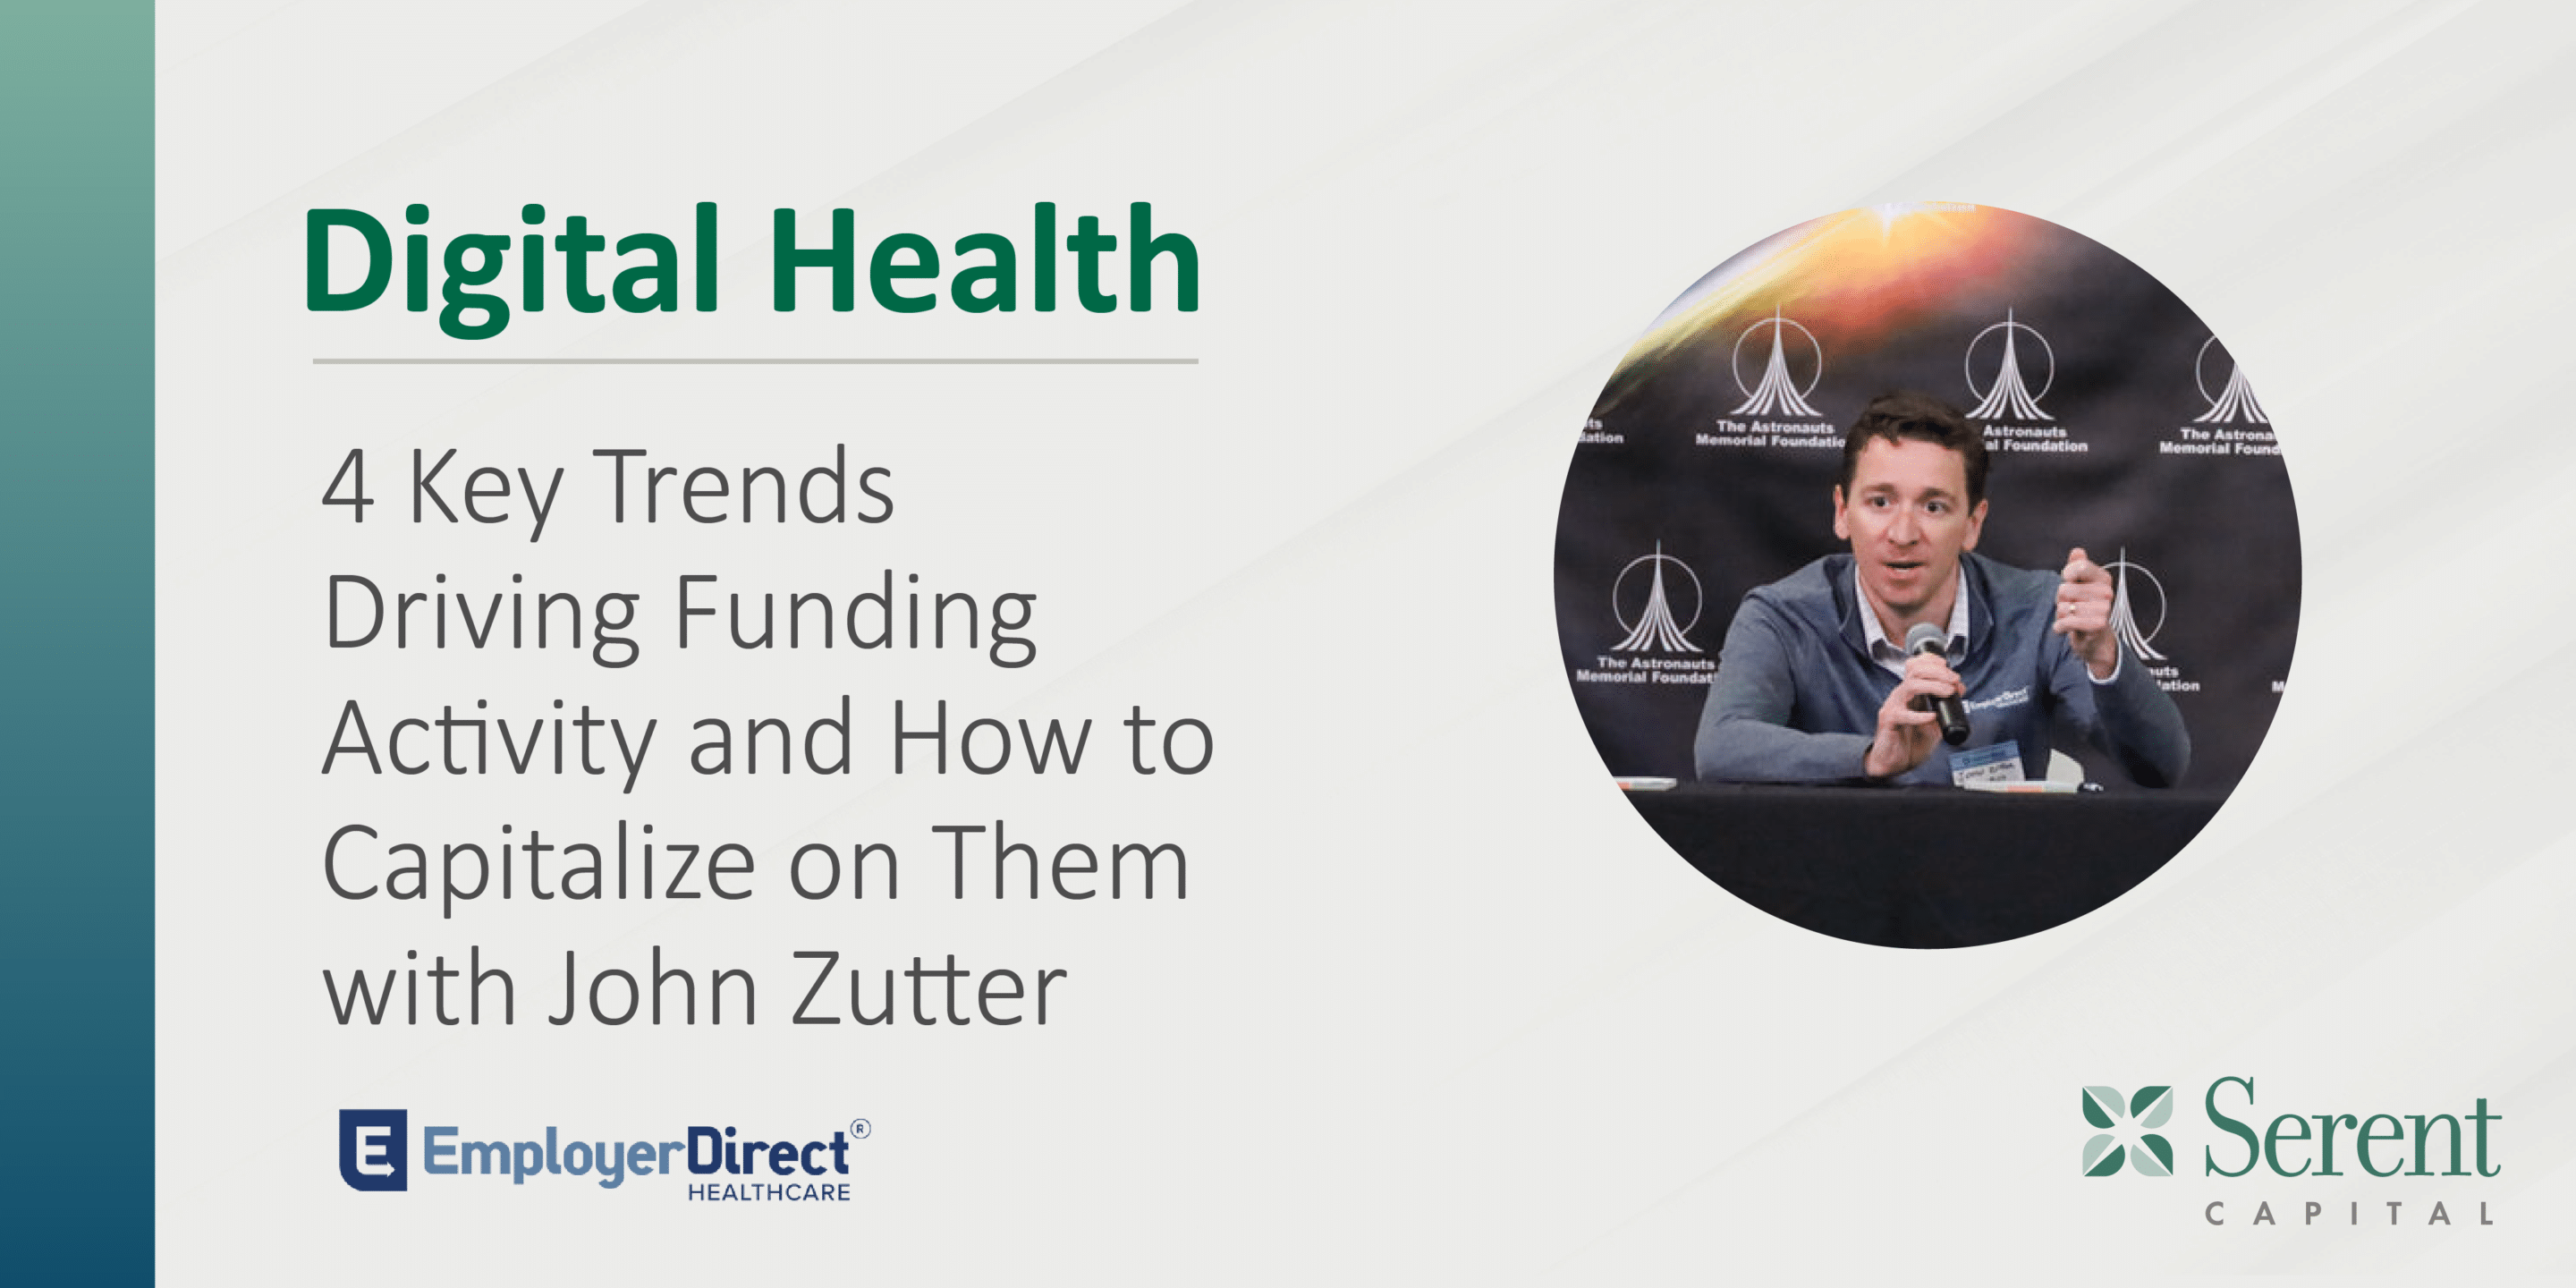 Digital Health: 4 Key Trends Driving Funding Activity and How to Capitalize on Them